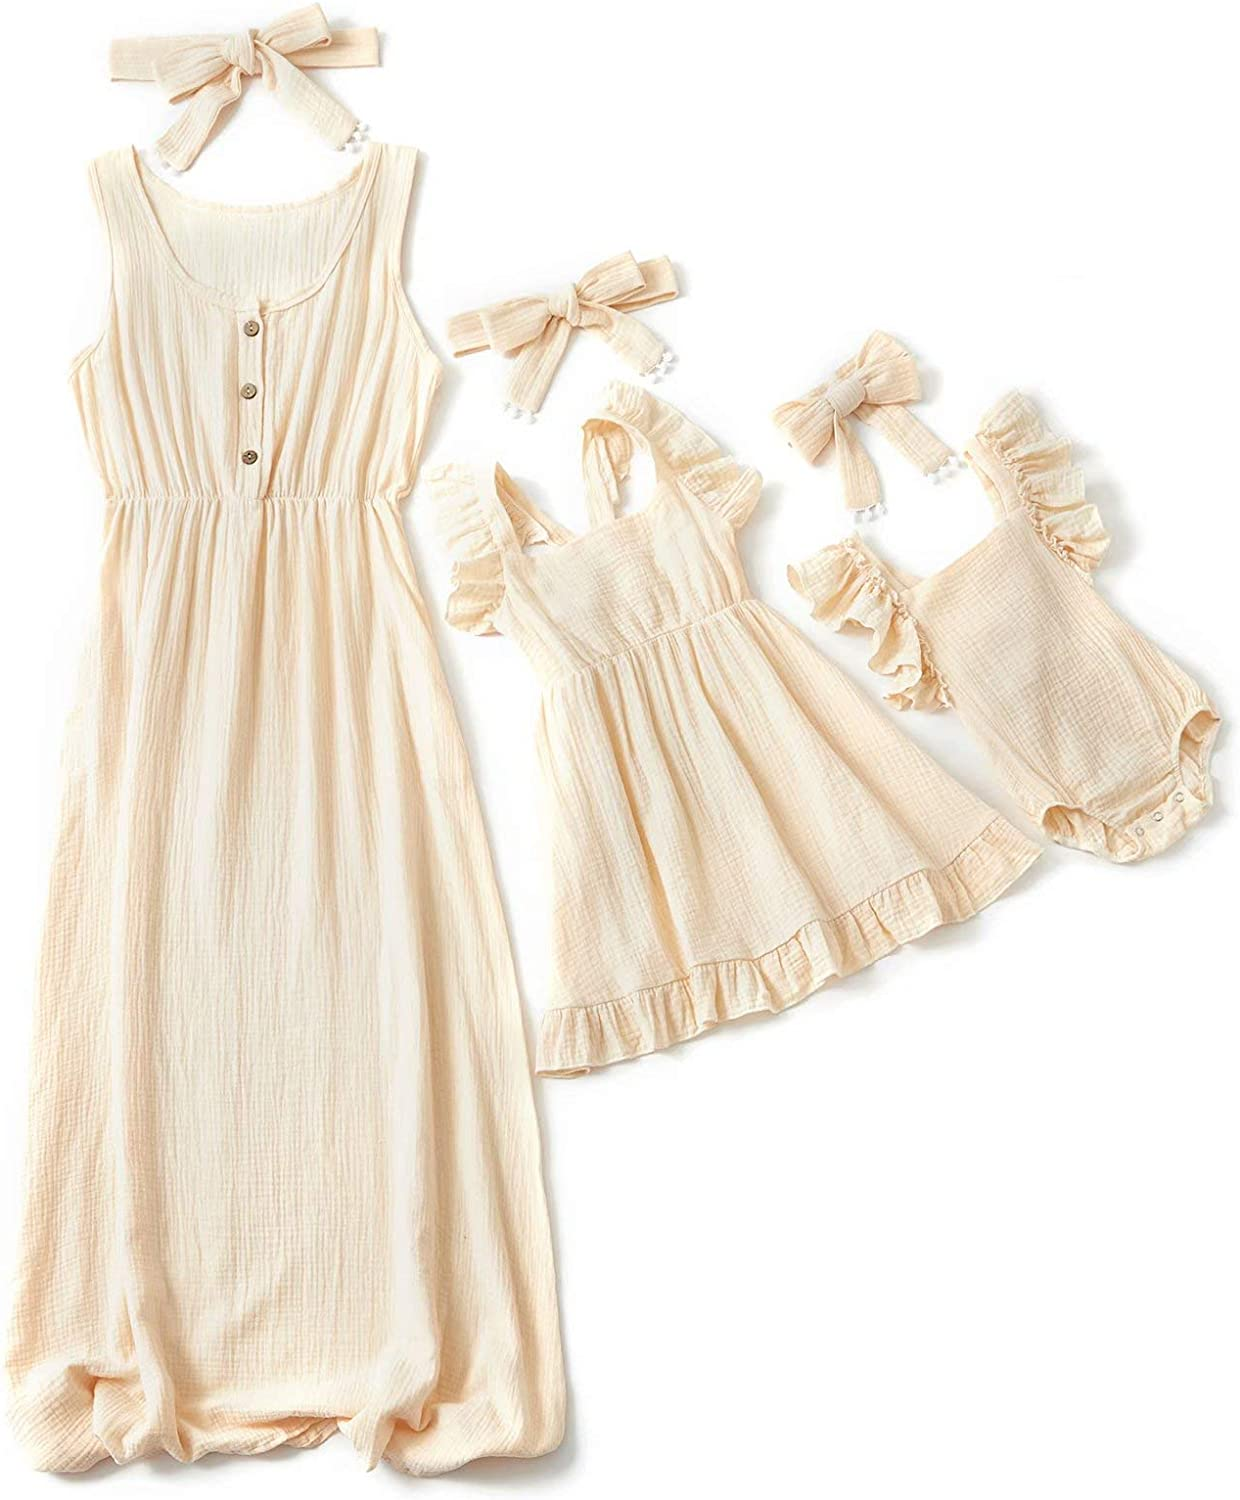 IFFEI Mommy and Me Matching Maxi Dress Sleeveless Matching Outfits with Headband for Mother and Daughter